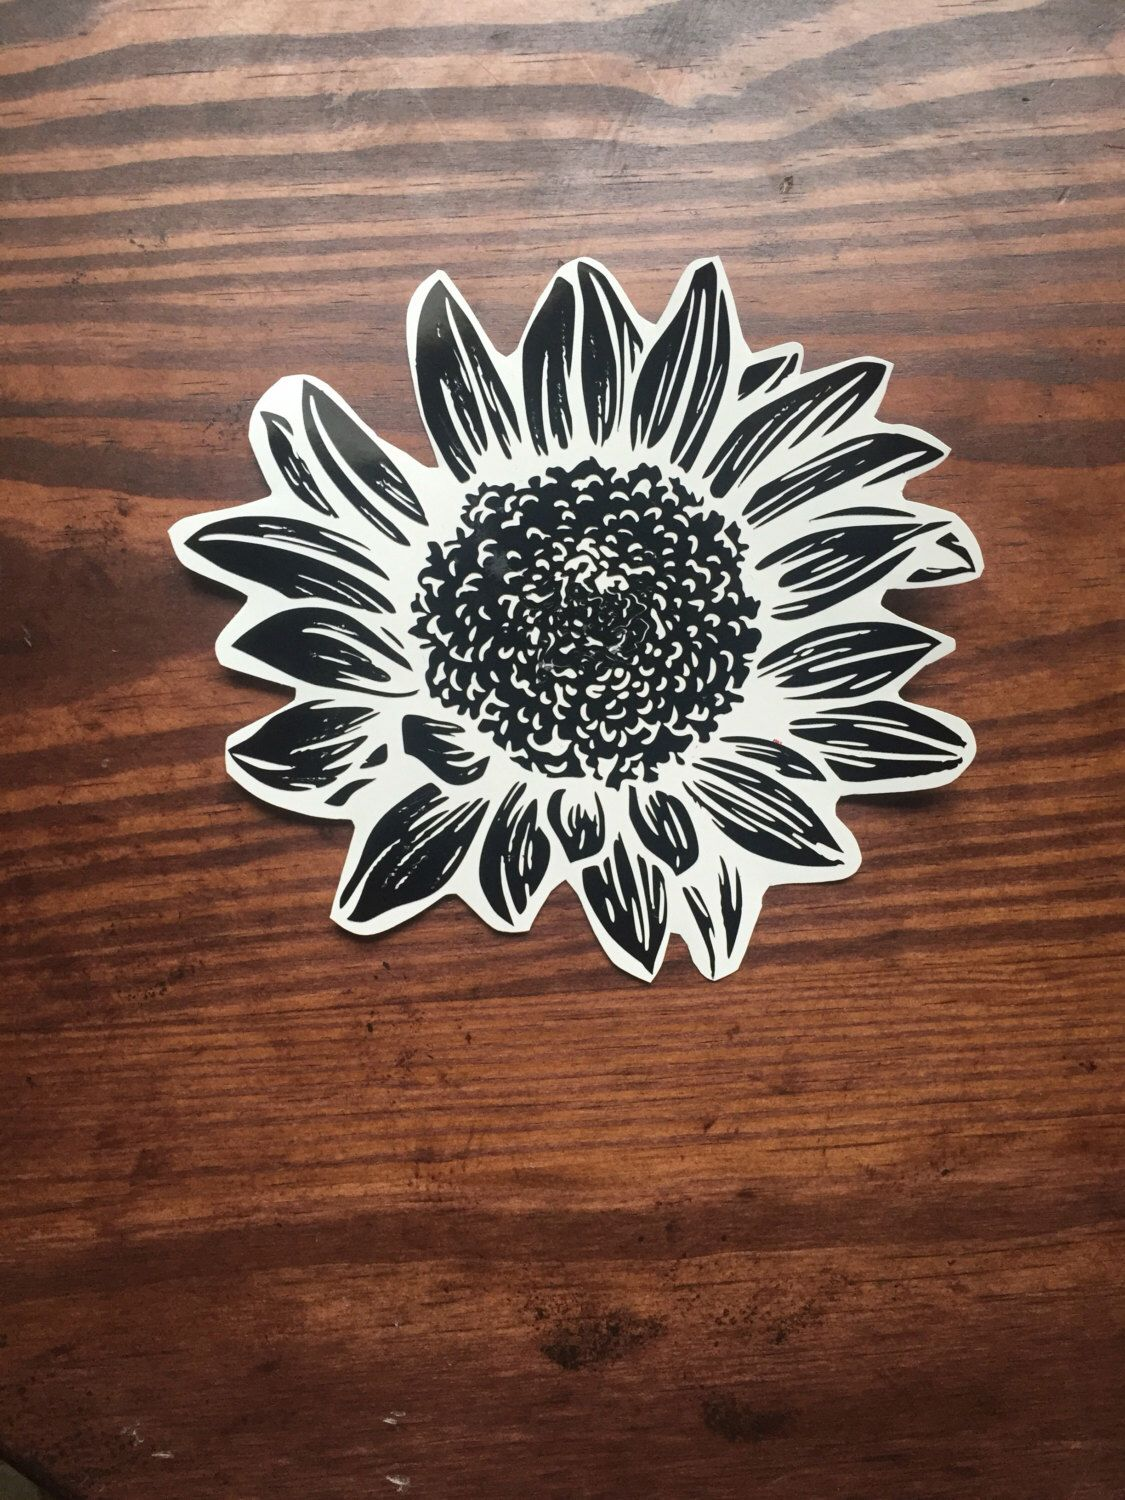 Sunflower Decal Flower Decal Car Decal Laptop Decal Black Flower Decal Tumbler Decal By Thelavenderdoily O Monogram Car Stickers Cars Clothes Car Stickers [ 1500 x 1125 Pixel ]